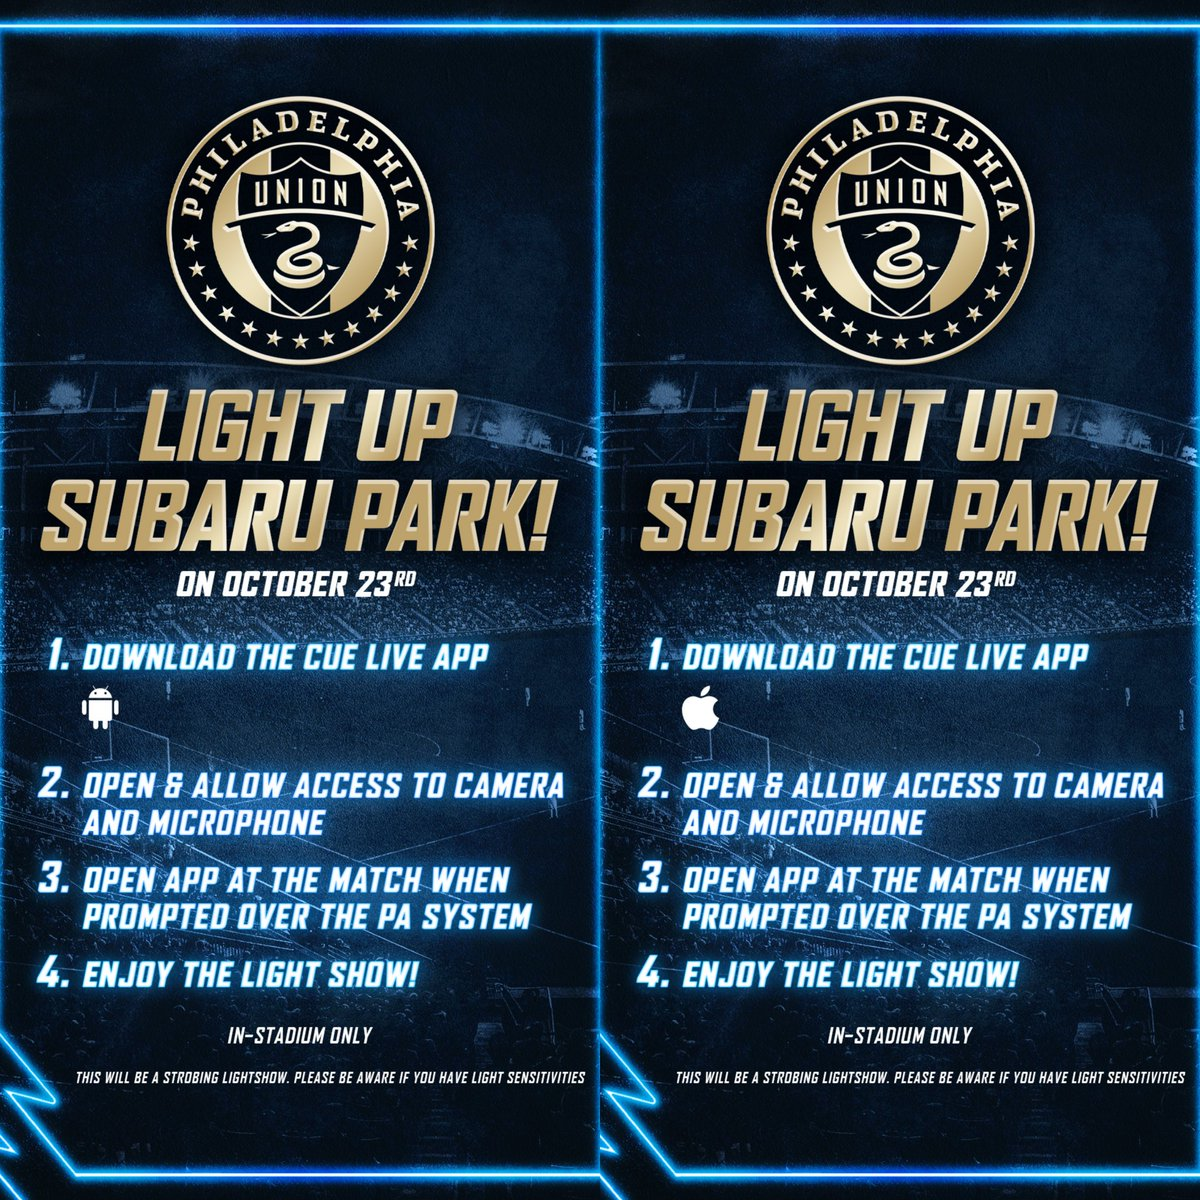 Hey everyone! This Saturday the @PhilaUnion need our help to light up @Subaru_Park! It's fast and easy! 👇Follow the steps below👇